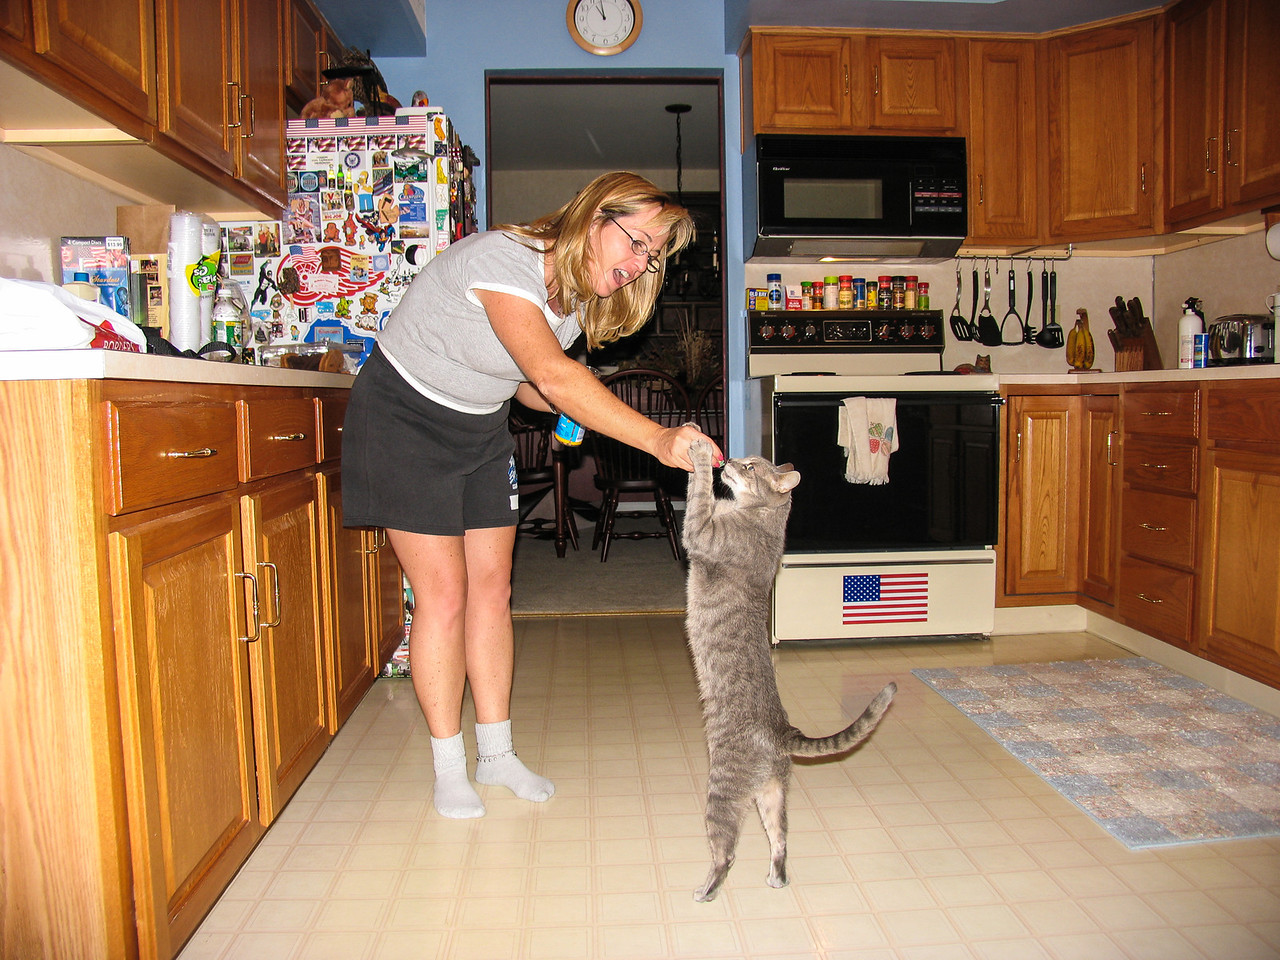 Gina giving El Gato some snacks - August 2005